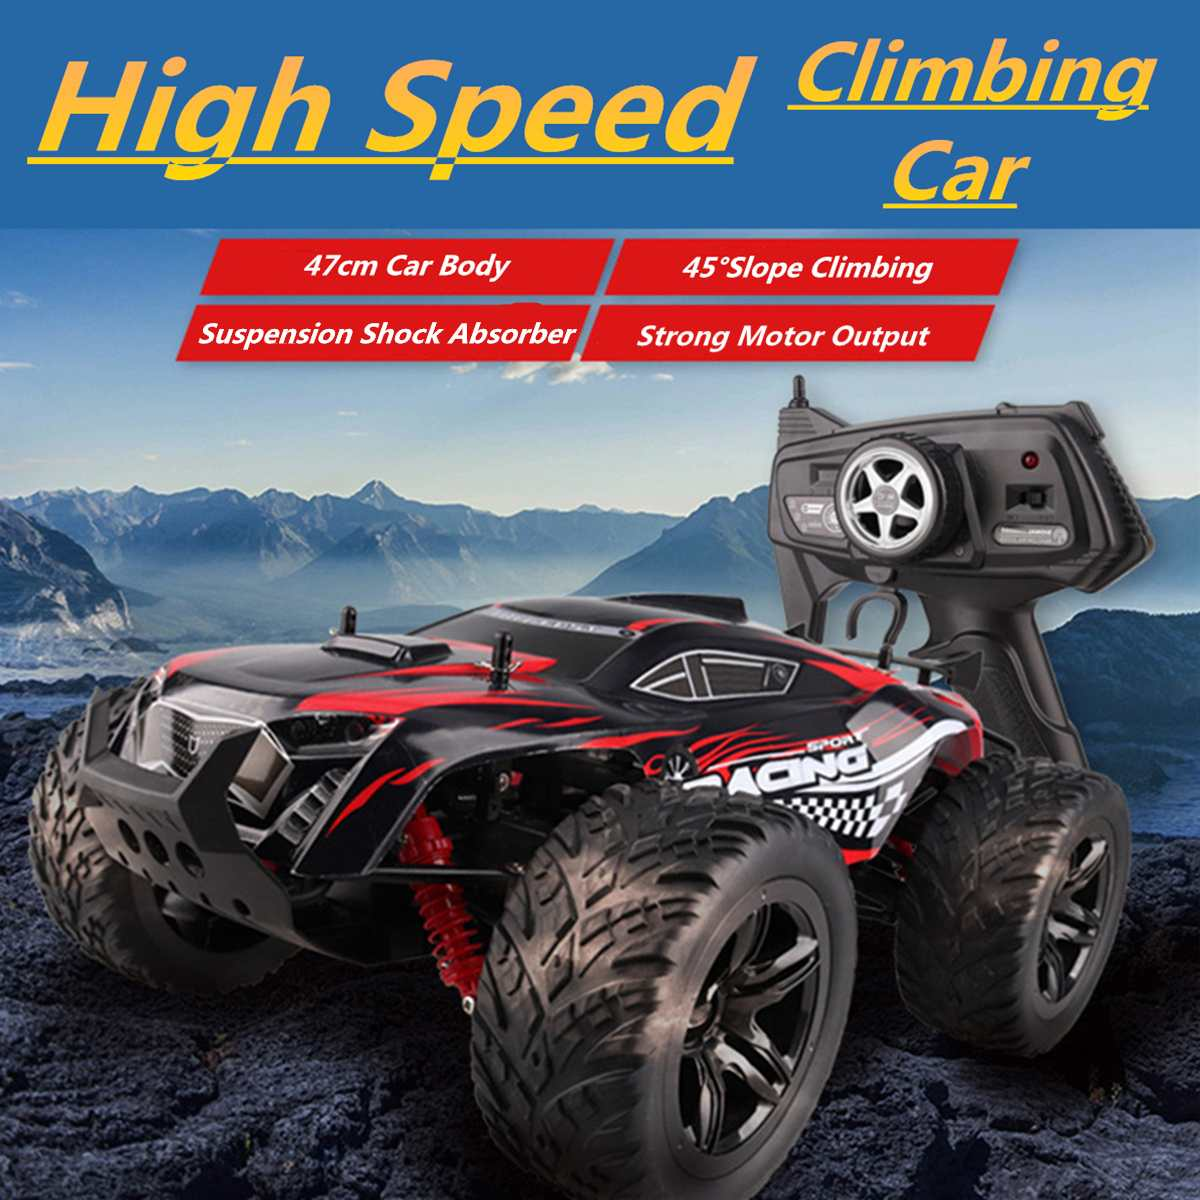 1/10 Climbing RC Car 4WD 2.4GHz High-speed RC Car Rock Rally Double Motors Bigfoot Car Remote Control Model Off-Road Vehicle Toy1/10 Climbing RC Car 4WD 2.4GHz High-speed RC Car Rock Rally Double Motors Bigfoot Car Remote Control Model Off-Road Vehicle Toy